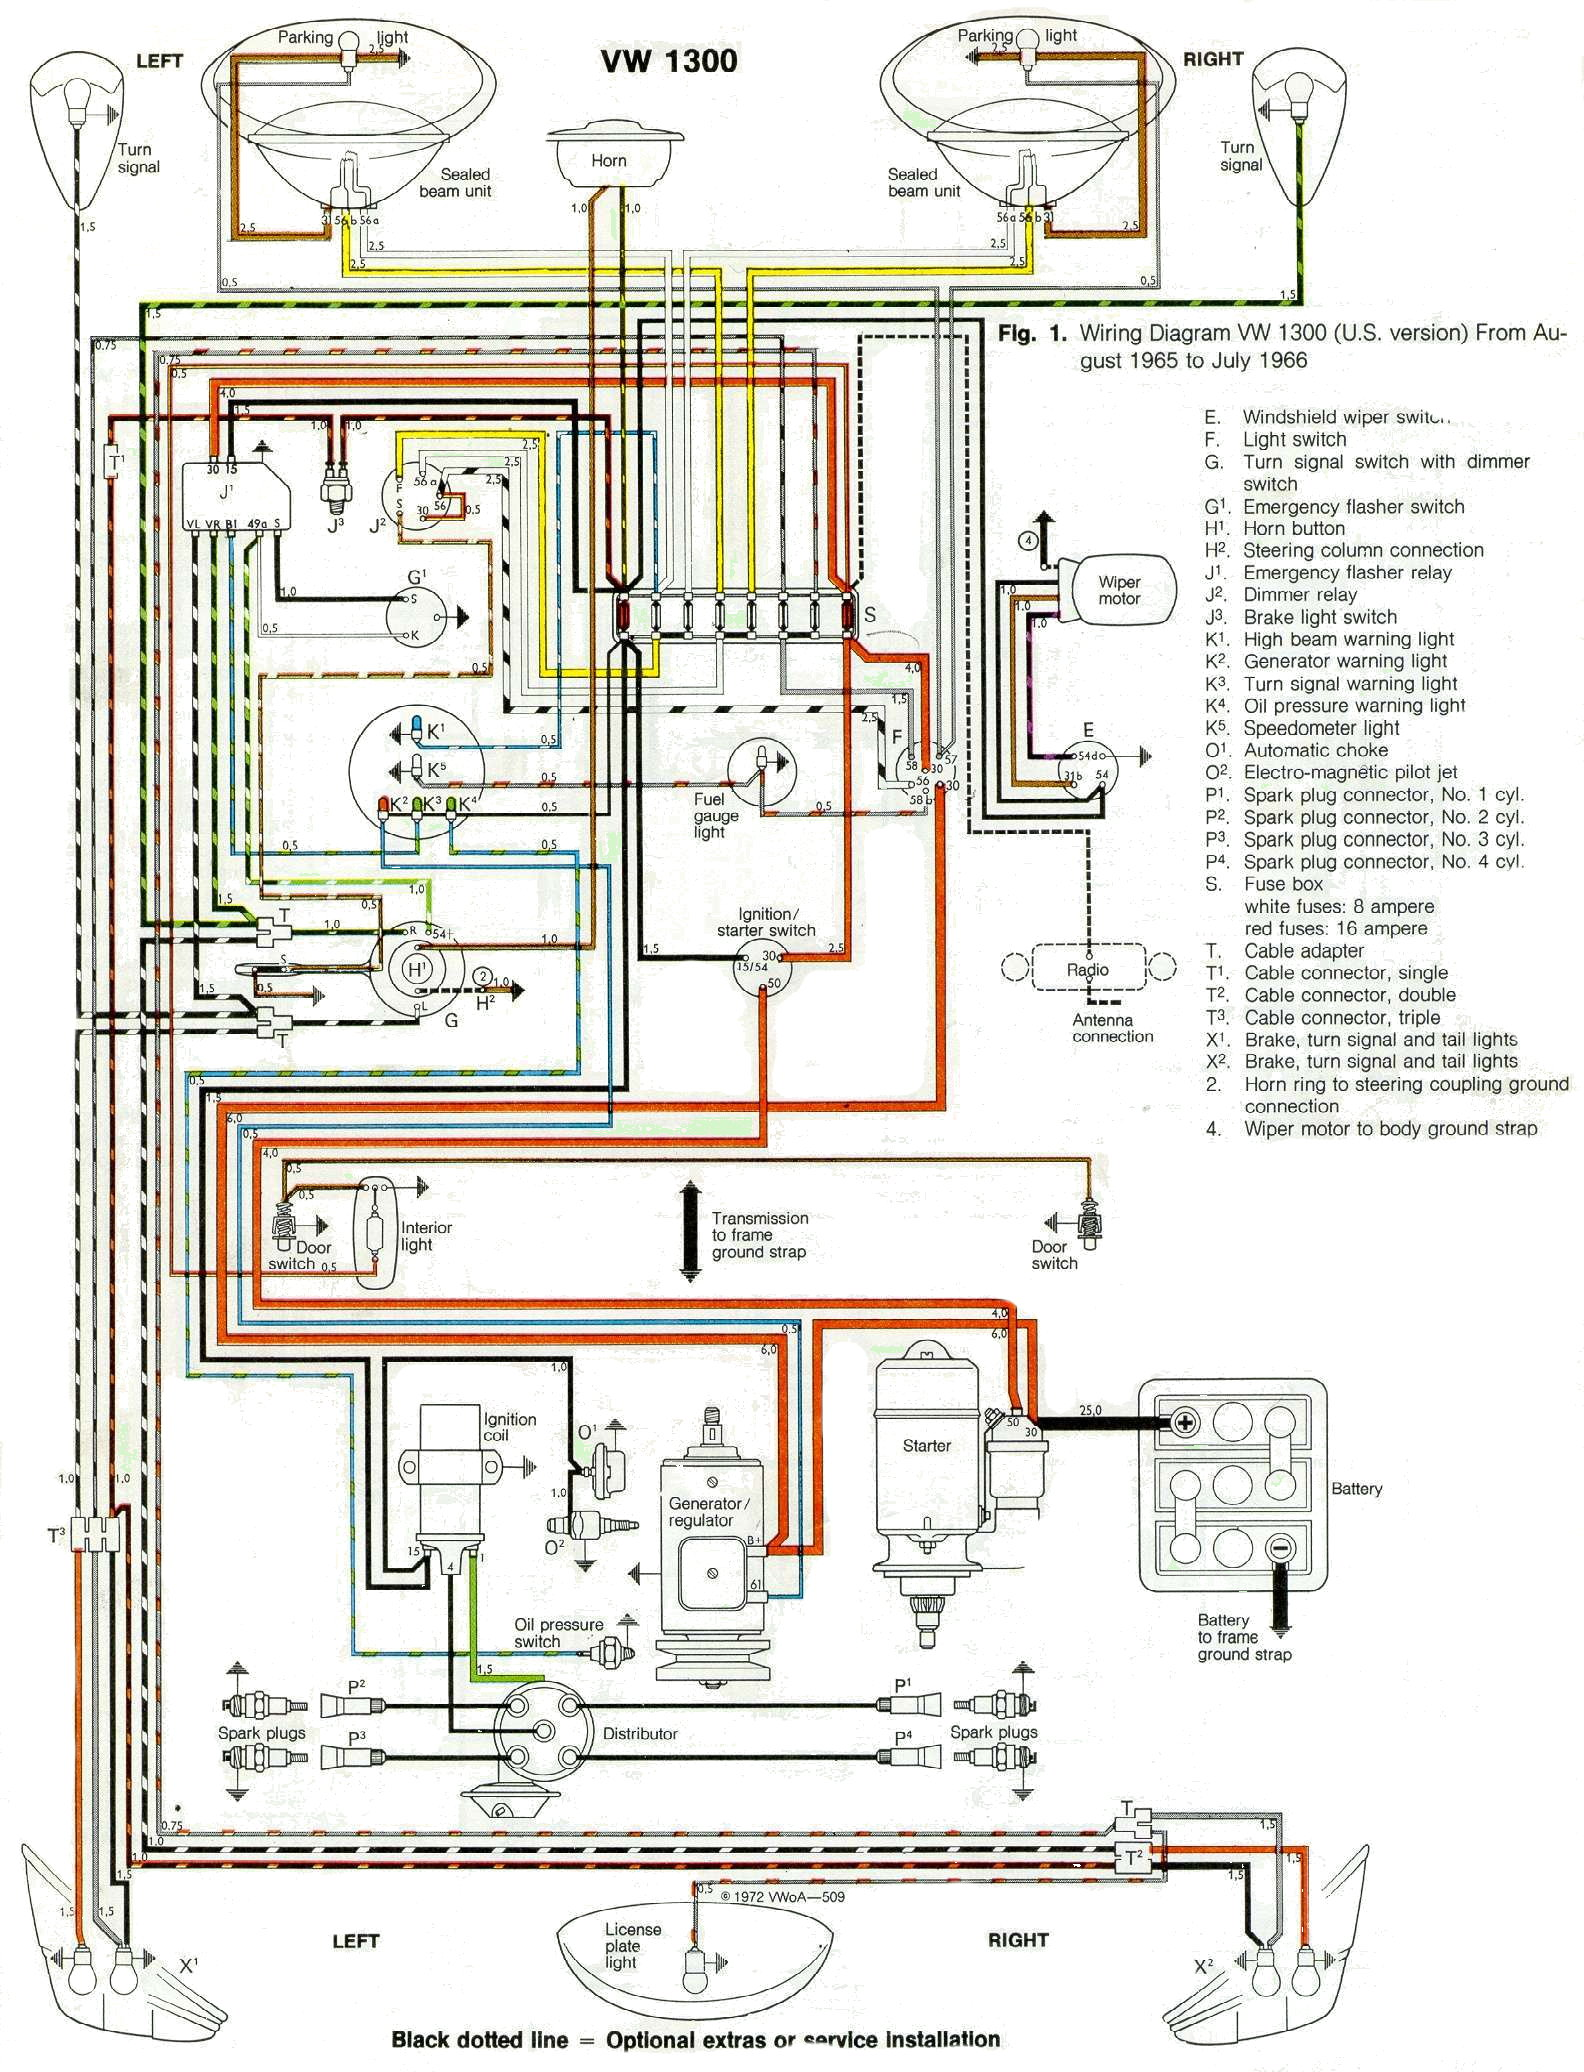 1966 Wiring 1966 wiring diagram beetle wiring diagram to fix a/c fan at readyjetset.co